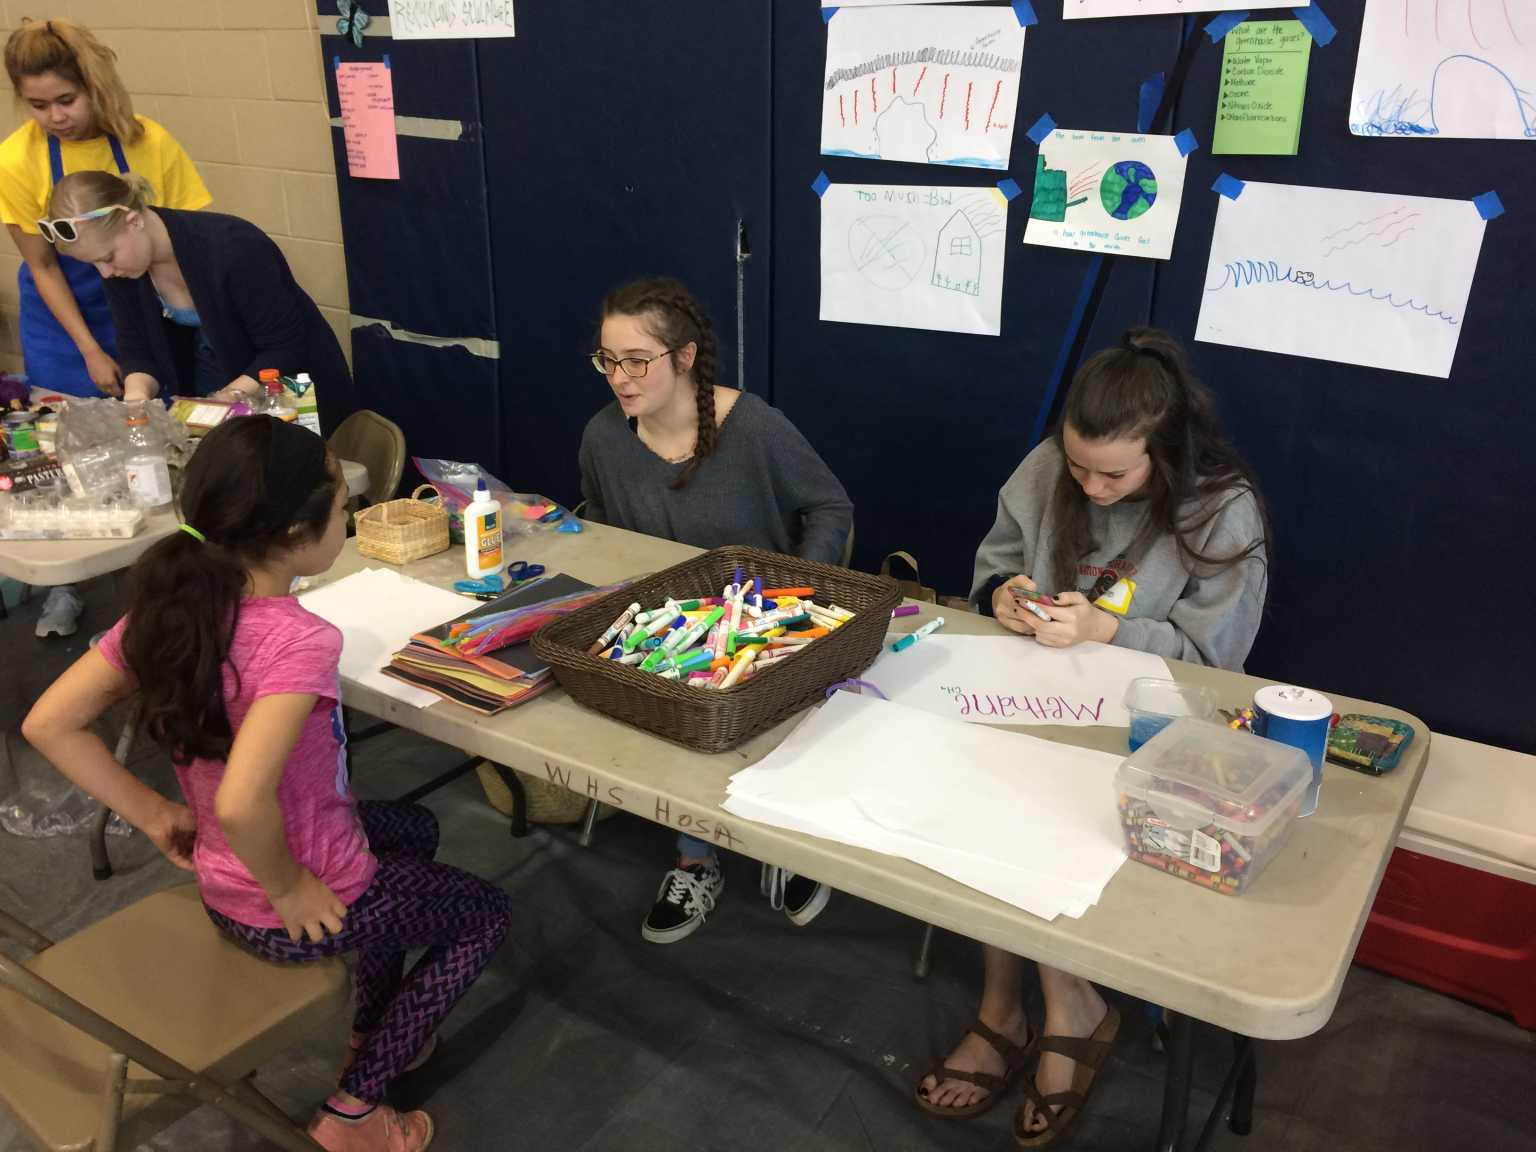 Elementary Ed. students work with young people to create environmental artwork at the BUILD Fest event in Boone.